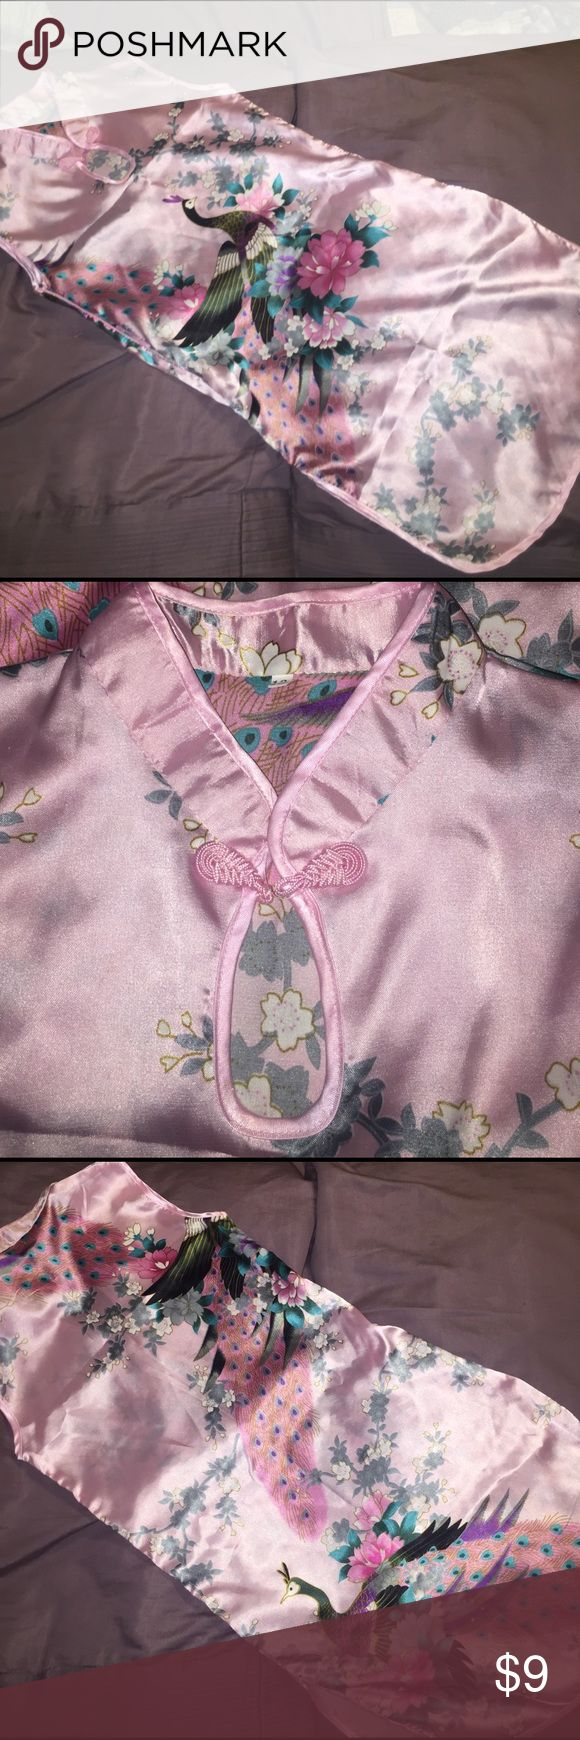 Pink satin Japanese girls dress, size 12,beautiful Traditional Asian girls size 12 dress, very beautiful pink satin with peacocks and floral design, great condition, thin material, no rips or stains, worn once has a zipper on side under arm💖size runs small so 10 is more likely to fit asian  Dresses Casual